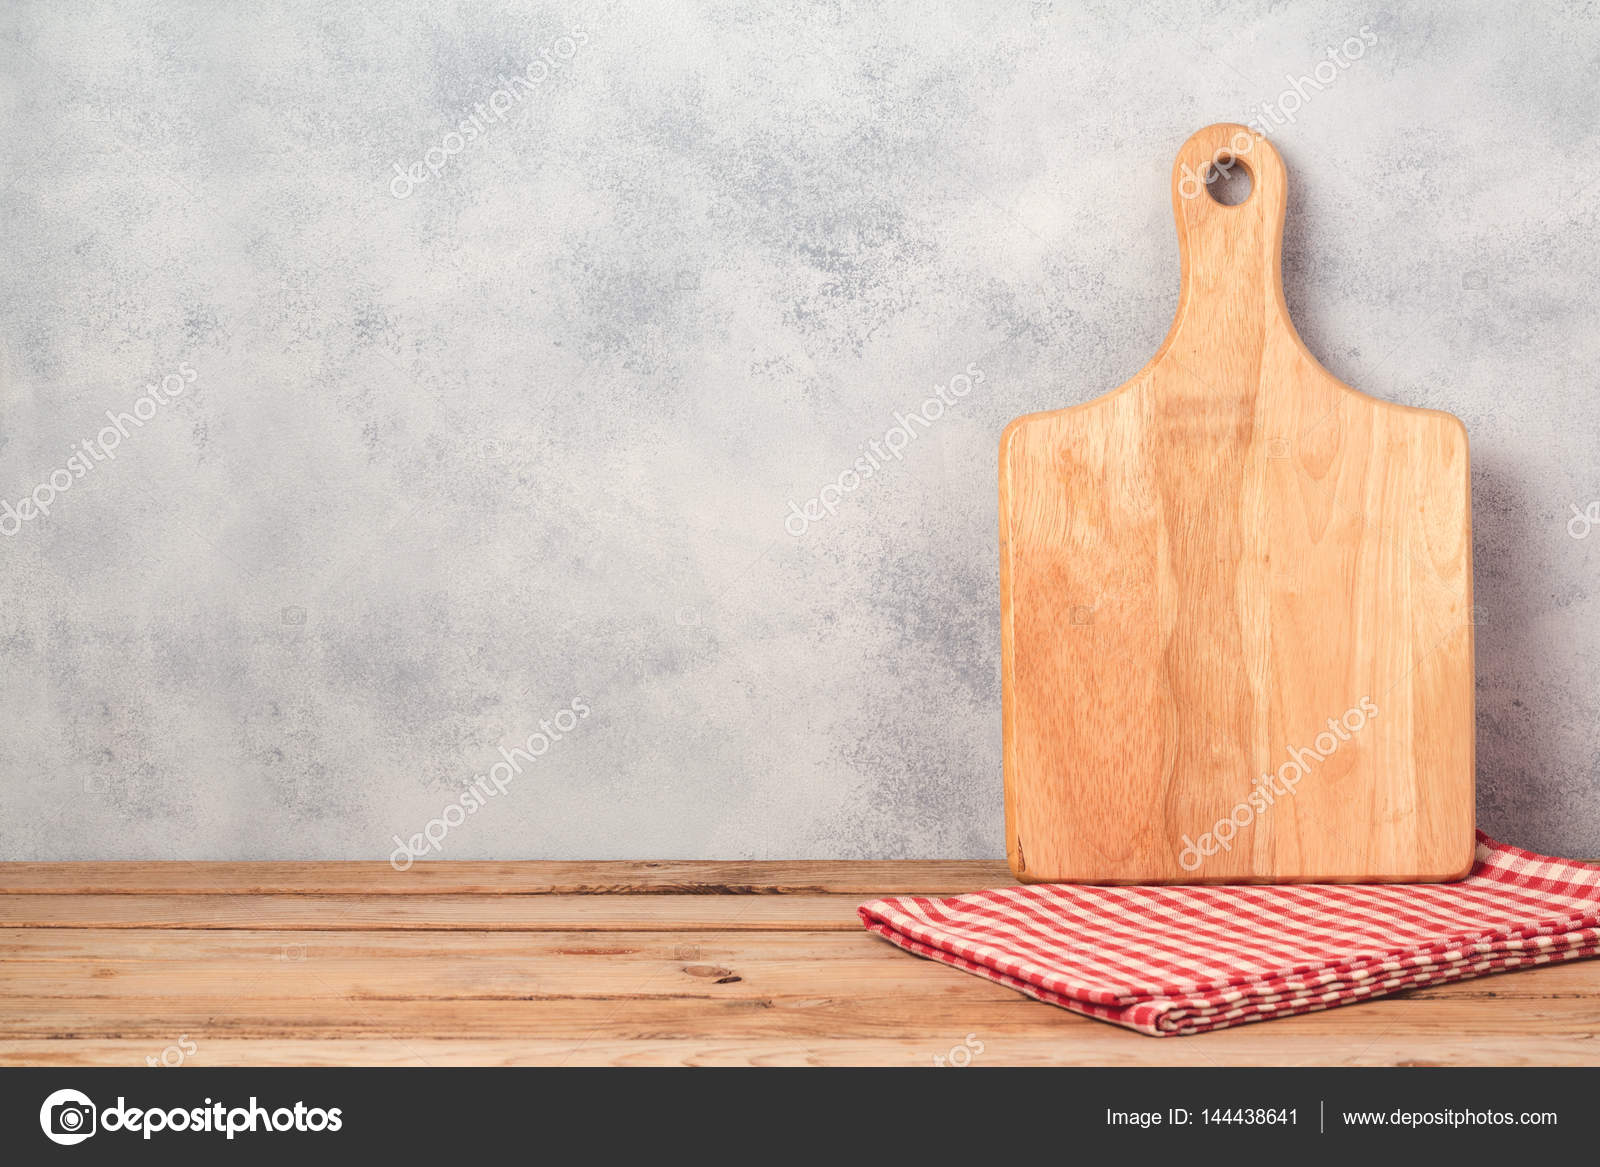 Kitchen Background With Cutting Board Stock Photo